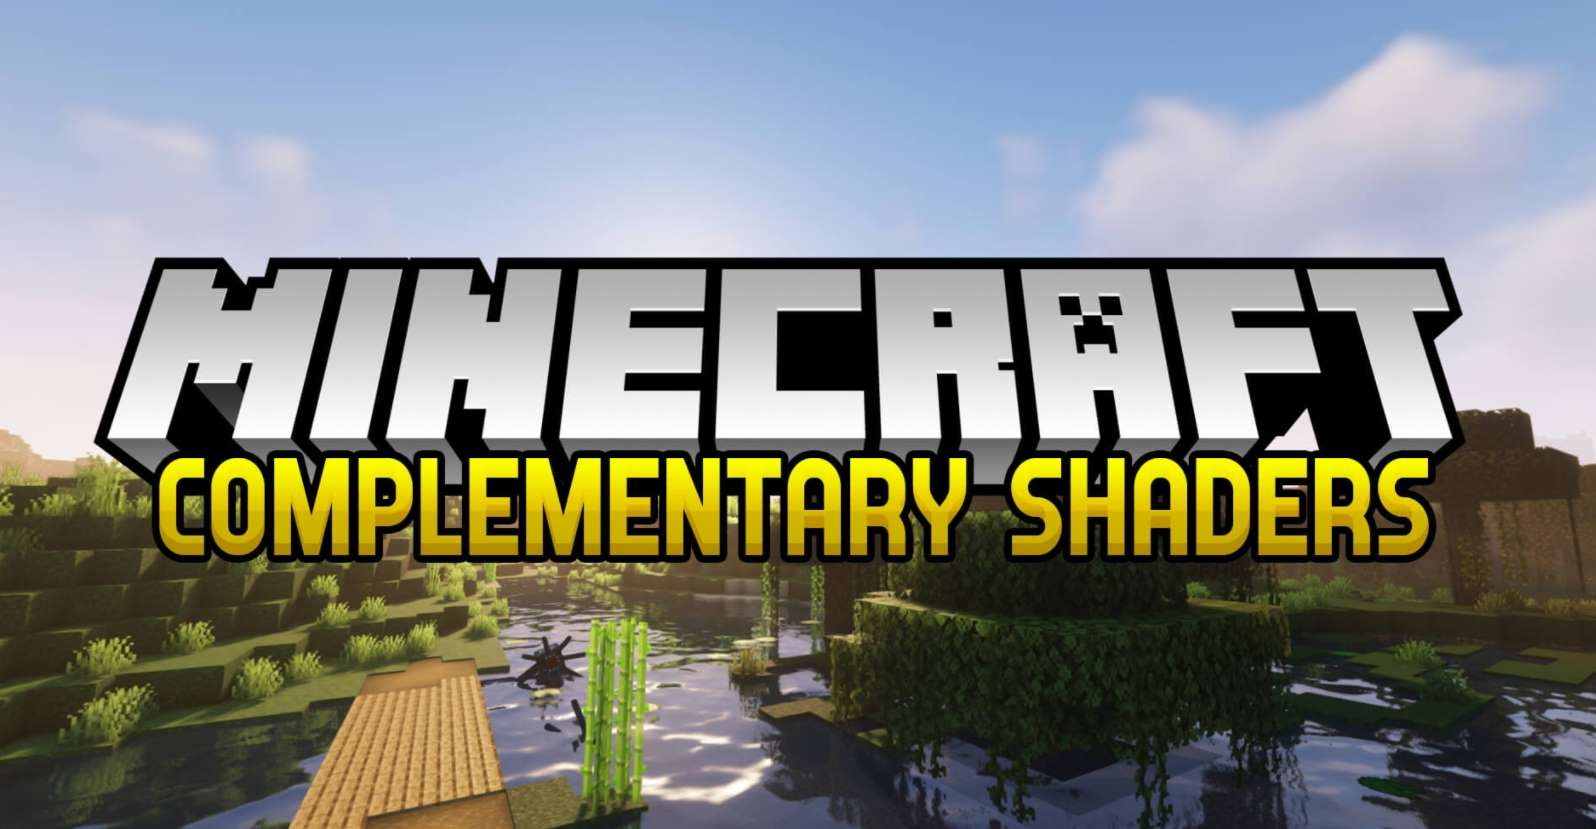 Complementary Shaders download